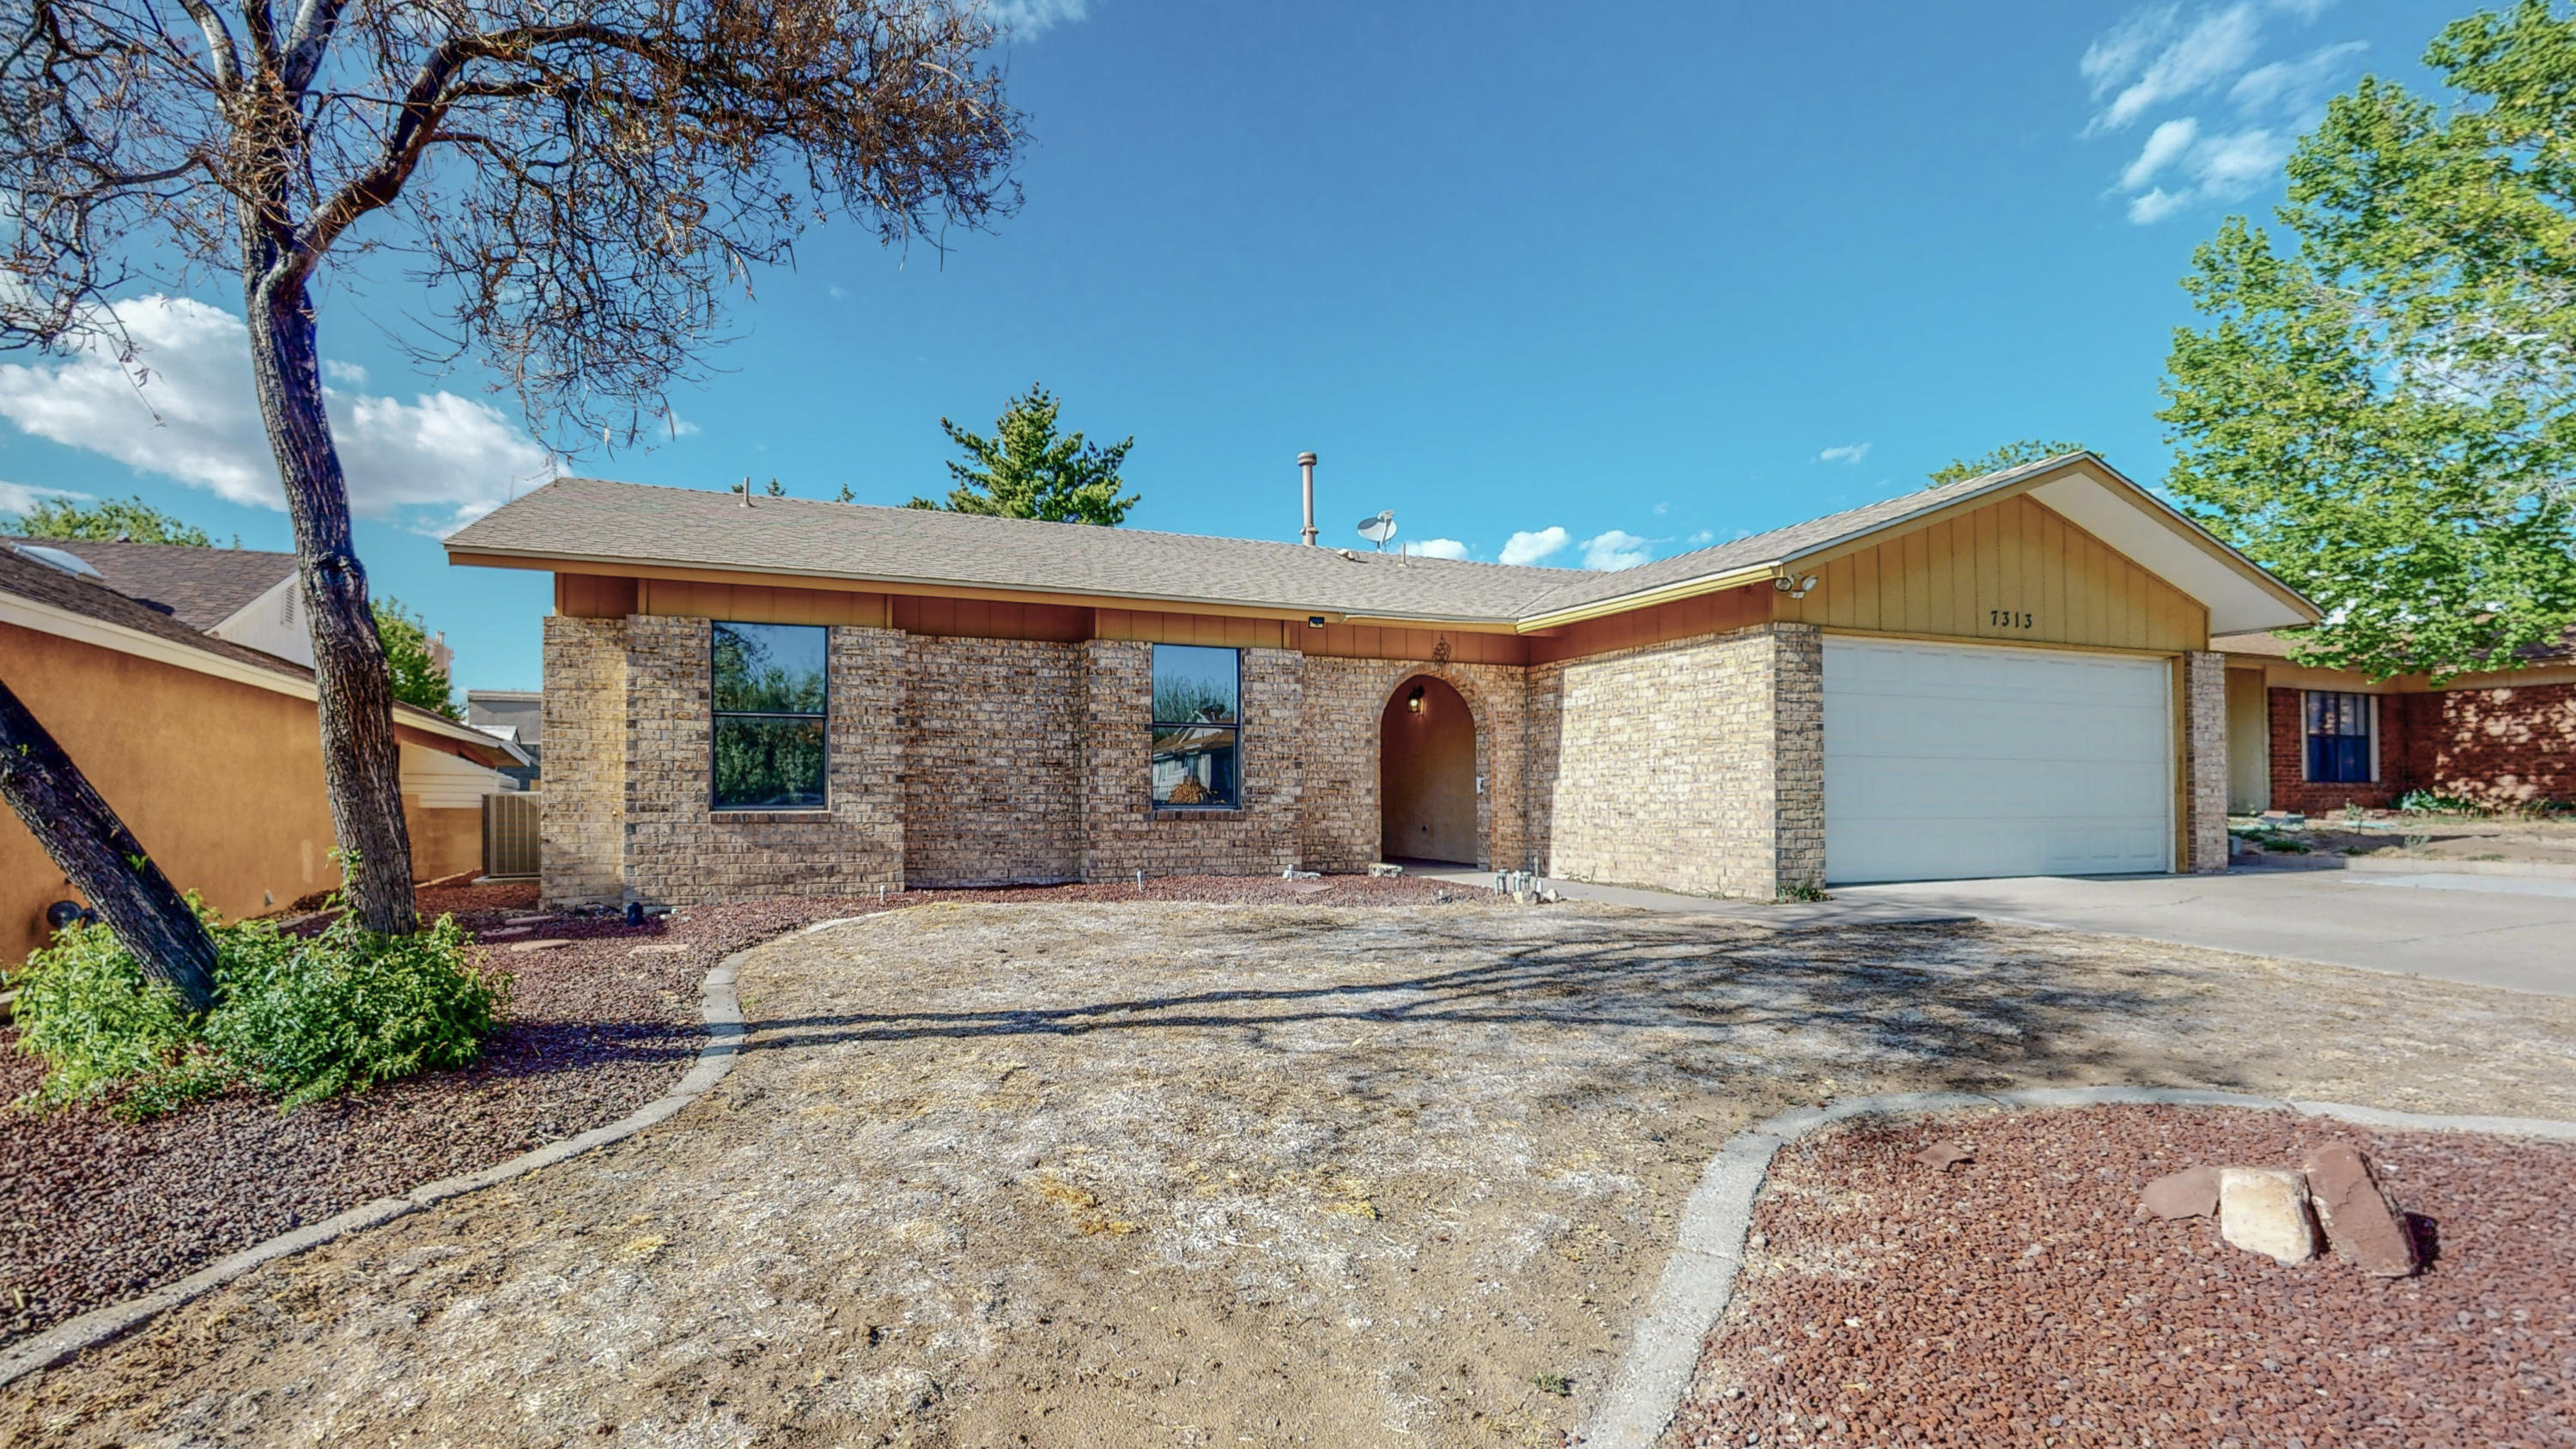 Don't miss this sweet single story home in a wonderful neighborhood just a stone's throw from I25 and all the shopping and amenities along Paseo del Norte. Enjoy a nice snooze in your roomy master bedroom and when you're up and around you'll get your kicks in a great living area layout that includes a separate dining room and updated kitchen with stone counter tops. There's a wood burning fireplace to toast your toes in the winter and a nice covered patio for those cool summer evenings. The rear yard has plenty of room for some reimagining and would xeriscape nicely. Roof and HVAC with refrigerated air both replaced in 2015. Water heater replace 2020.